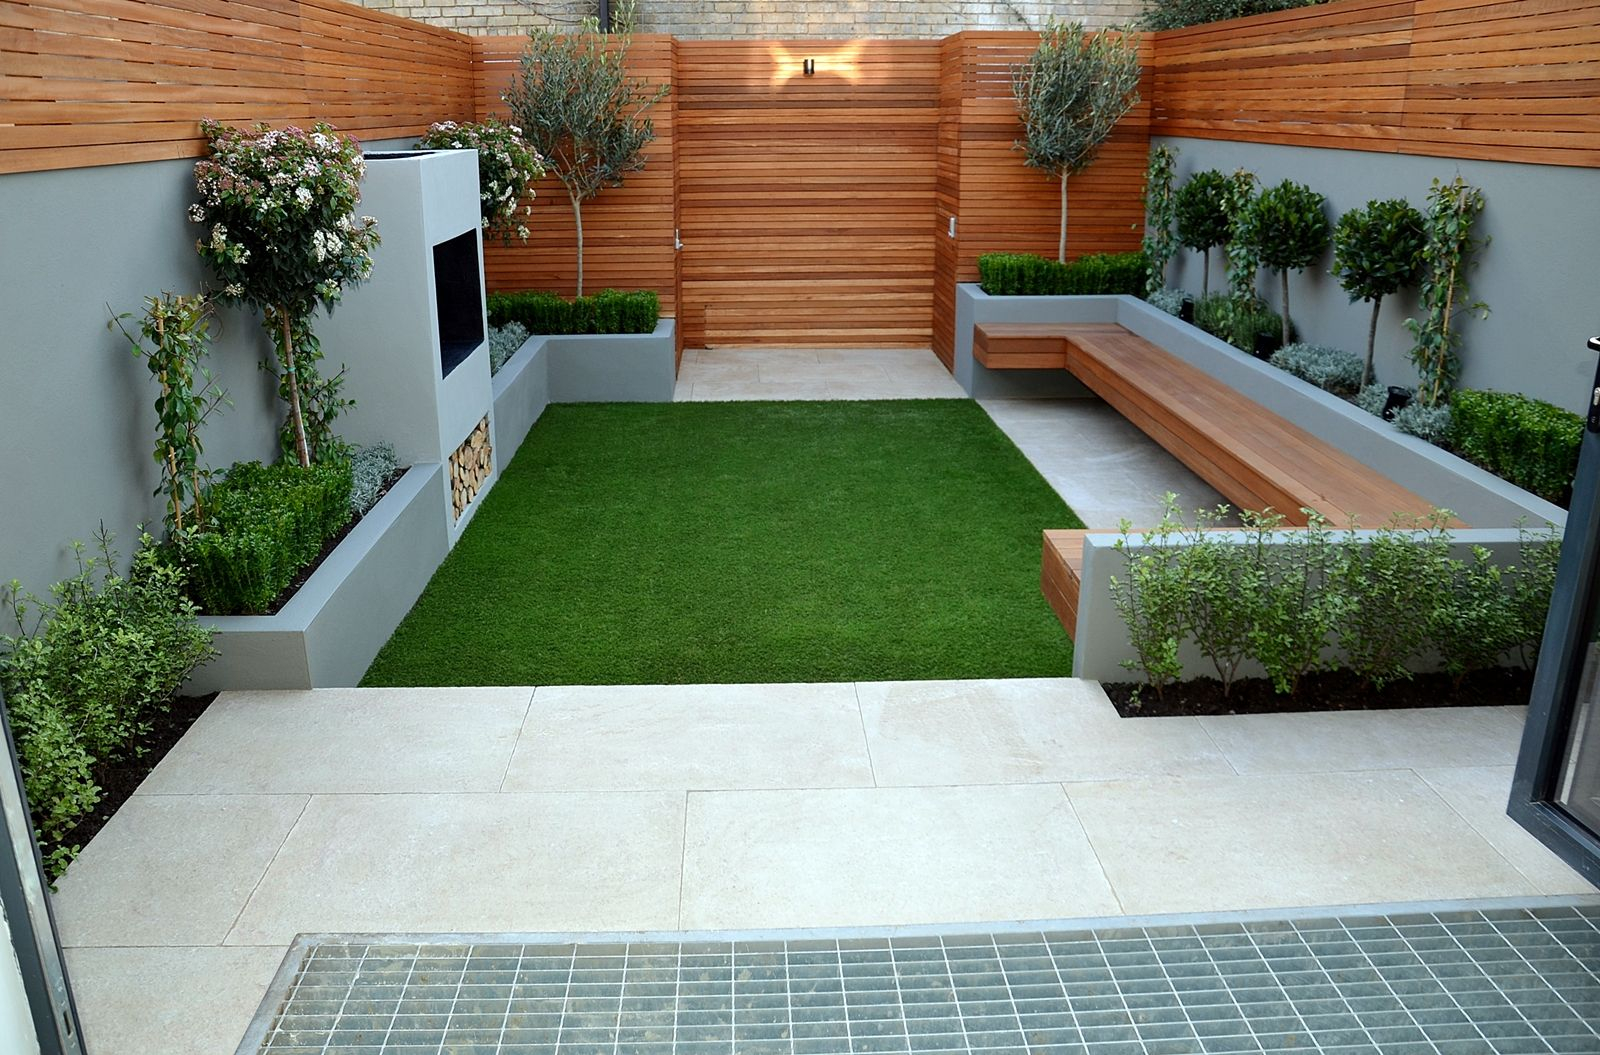 Elite Urban Garden Design Designer Gardens Landscape Design Ideas Online for Landscape Design Garden